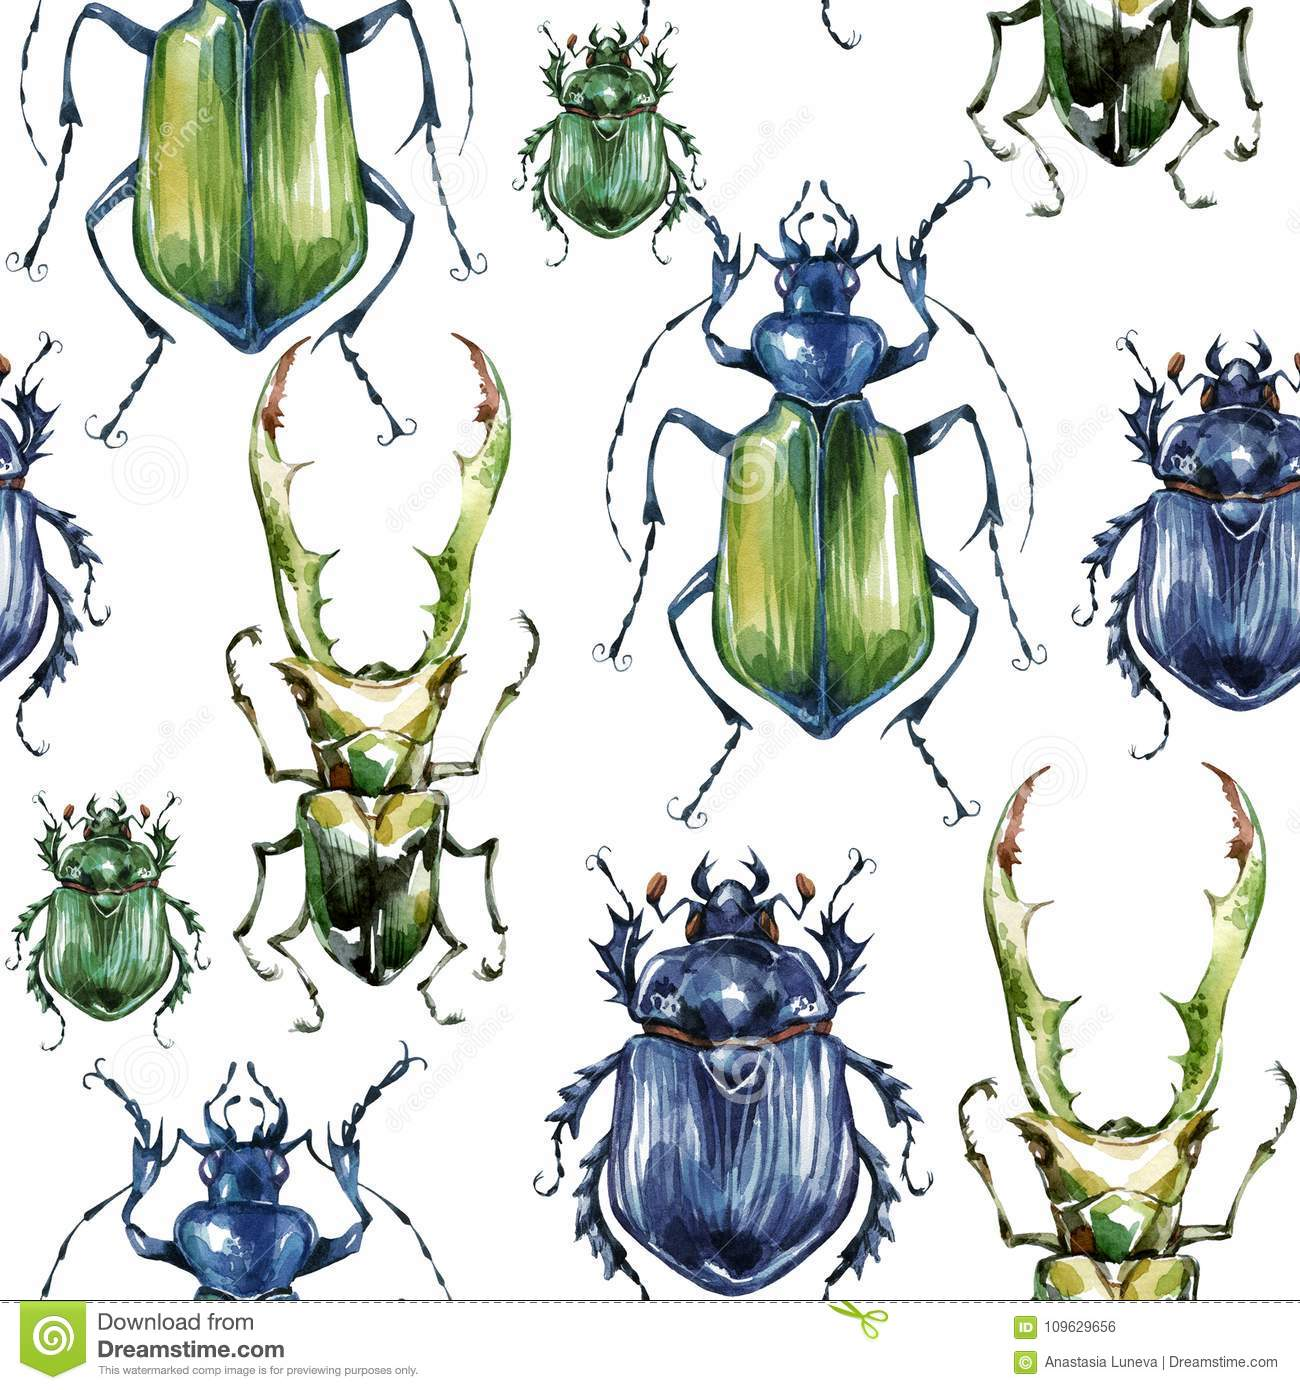 Seamless pattern with colorful beetles. Summer and spring background, watercolor illustration. Entomology. Wildlife set